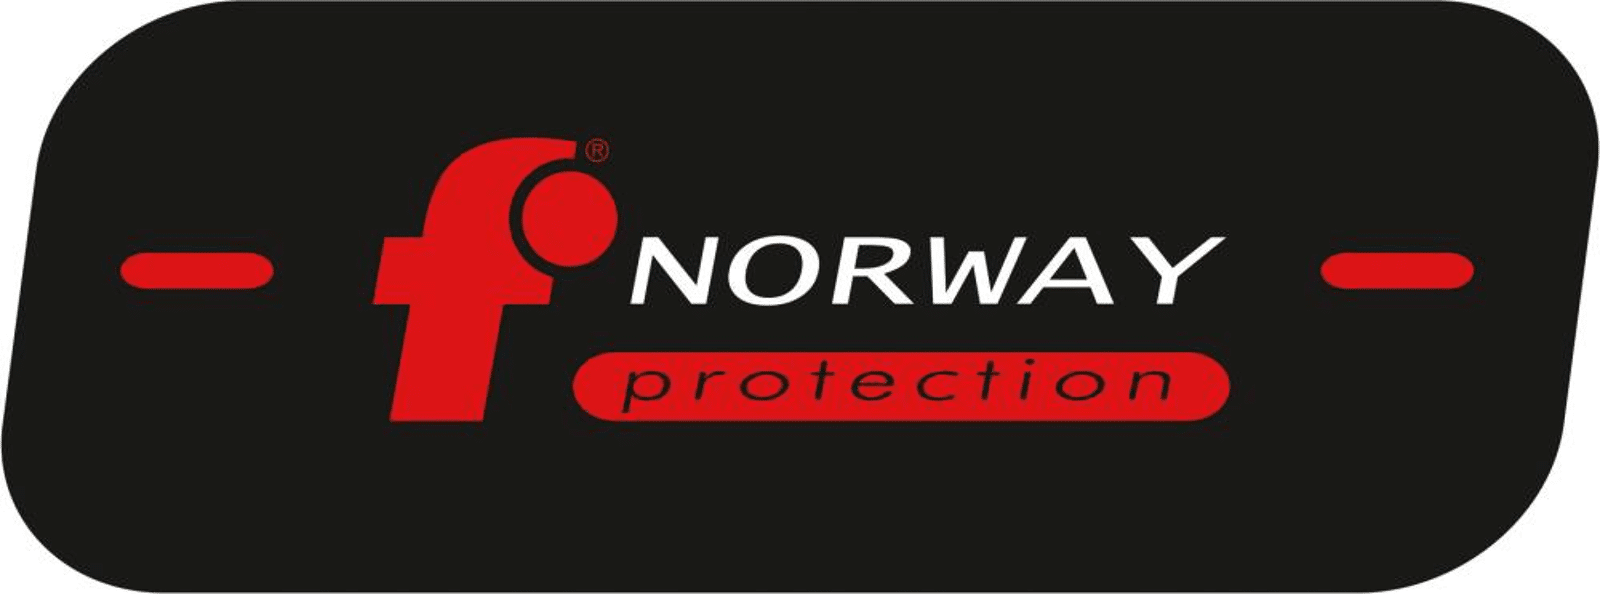 Norway protection